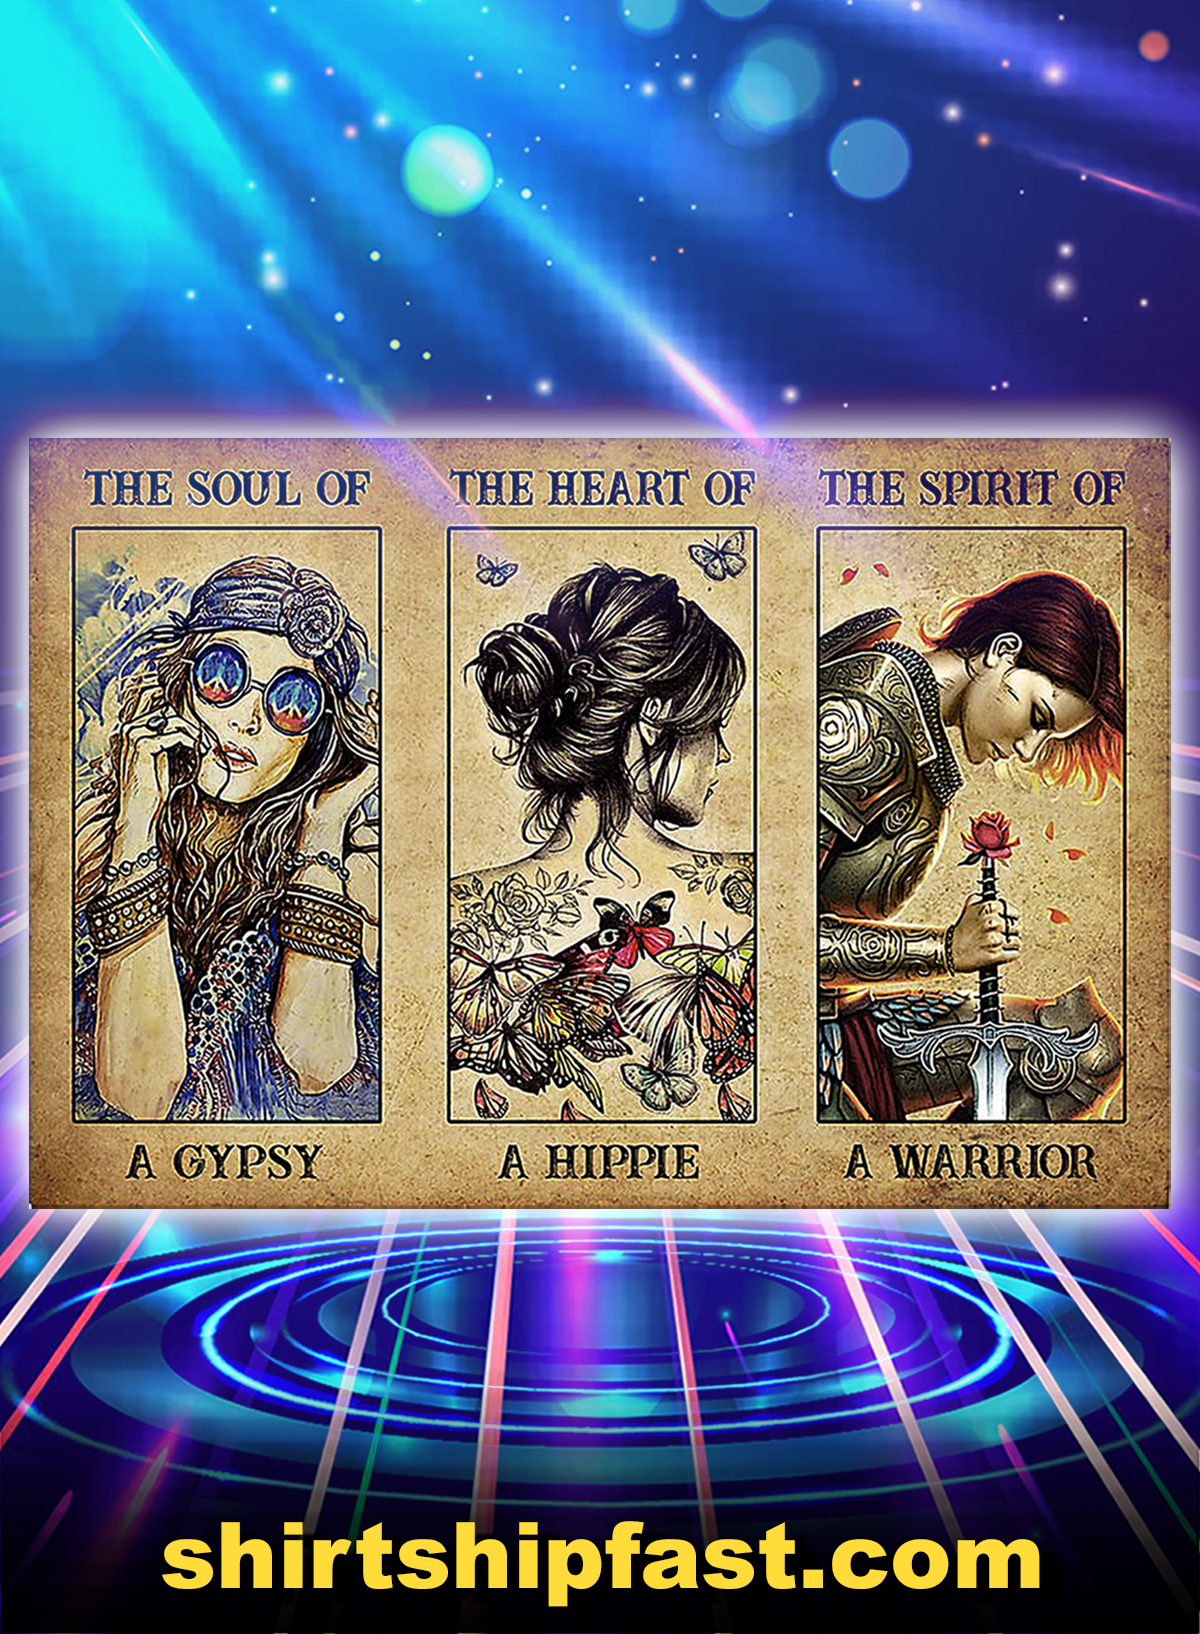 The soul of a gypsy the heart of a hippie poster - A1